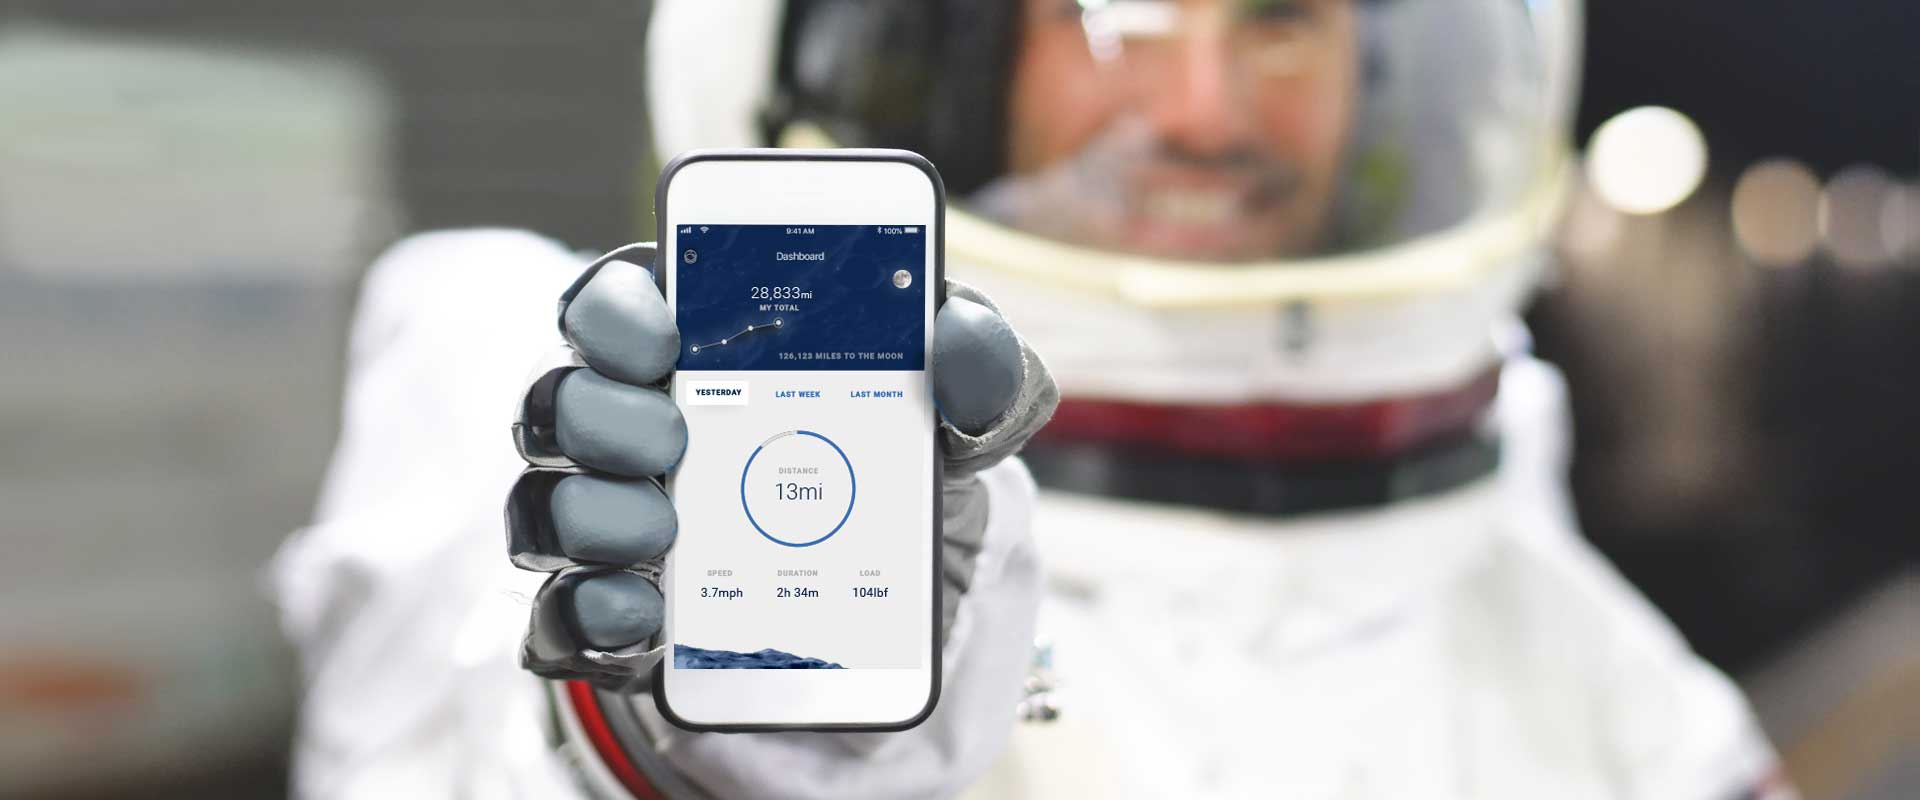 Astronaut holds mobile phone showing app dashboard